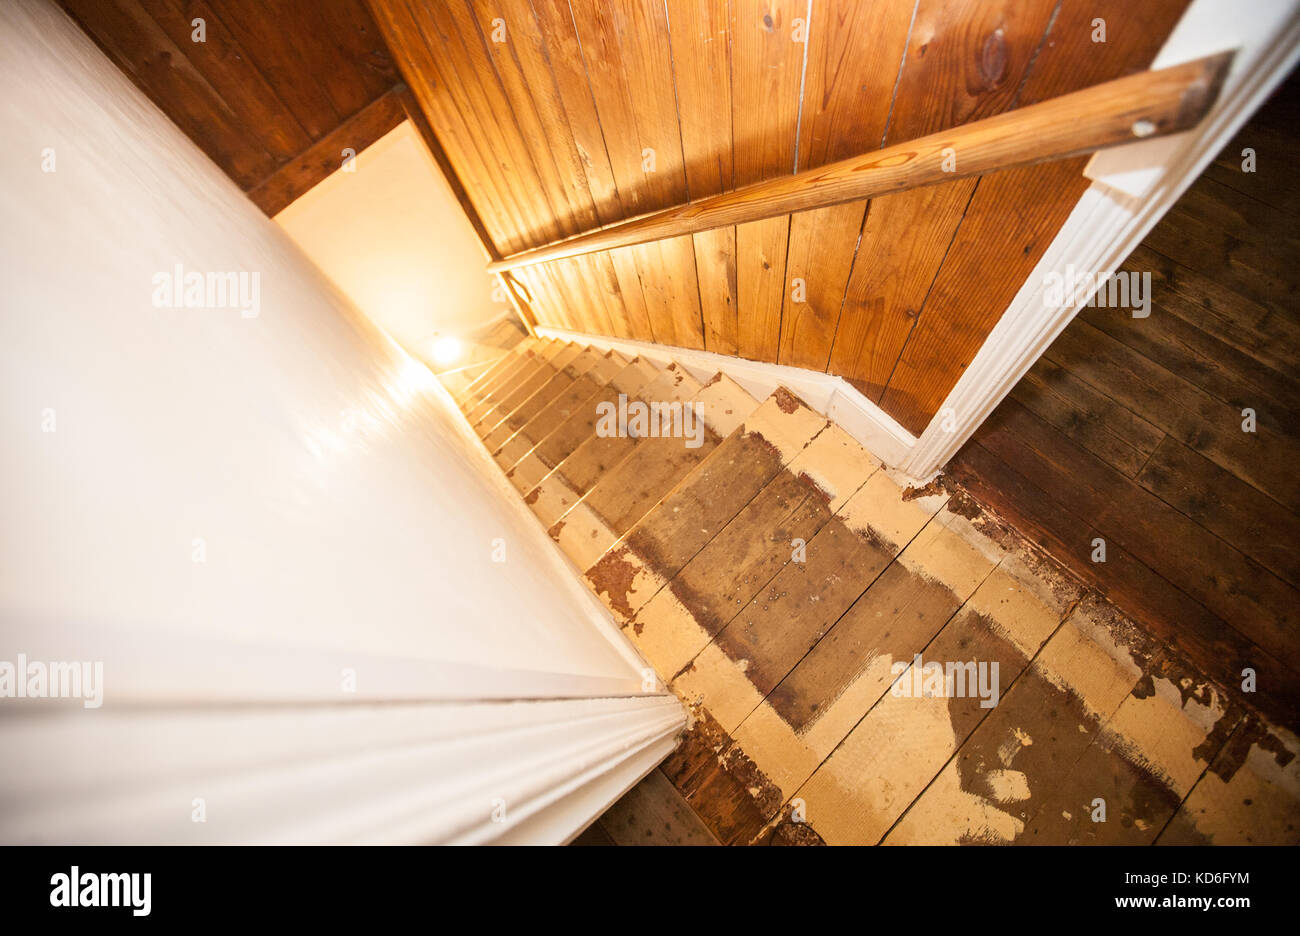 PROPERTY RELEASE,MY HOUSE STAIRS, Renovation,do It Yourself,DIY,diy, Renovating,wooden,staircase,old,paint,renew,stain,job,project,UK,U.K.,